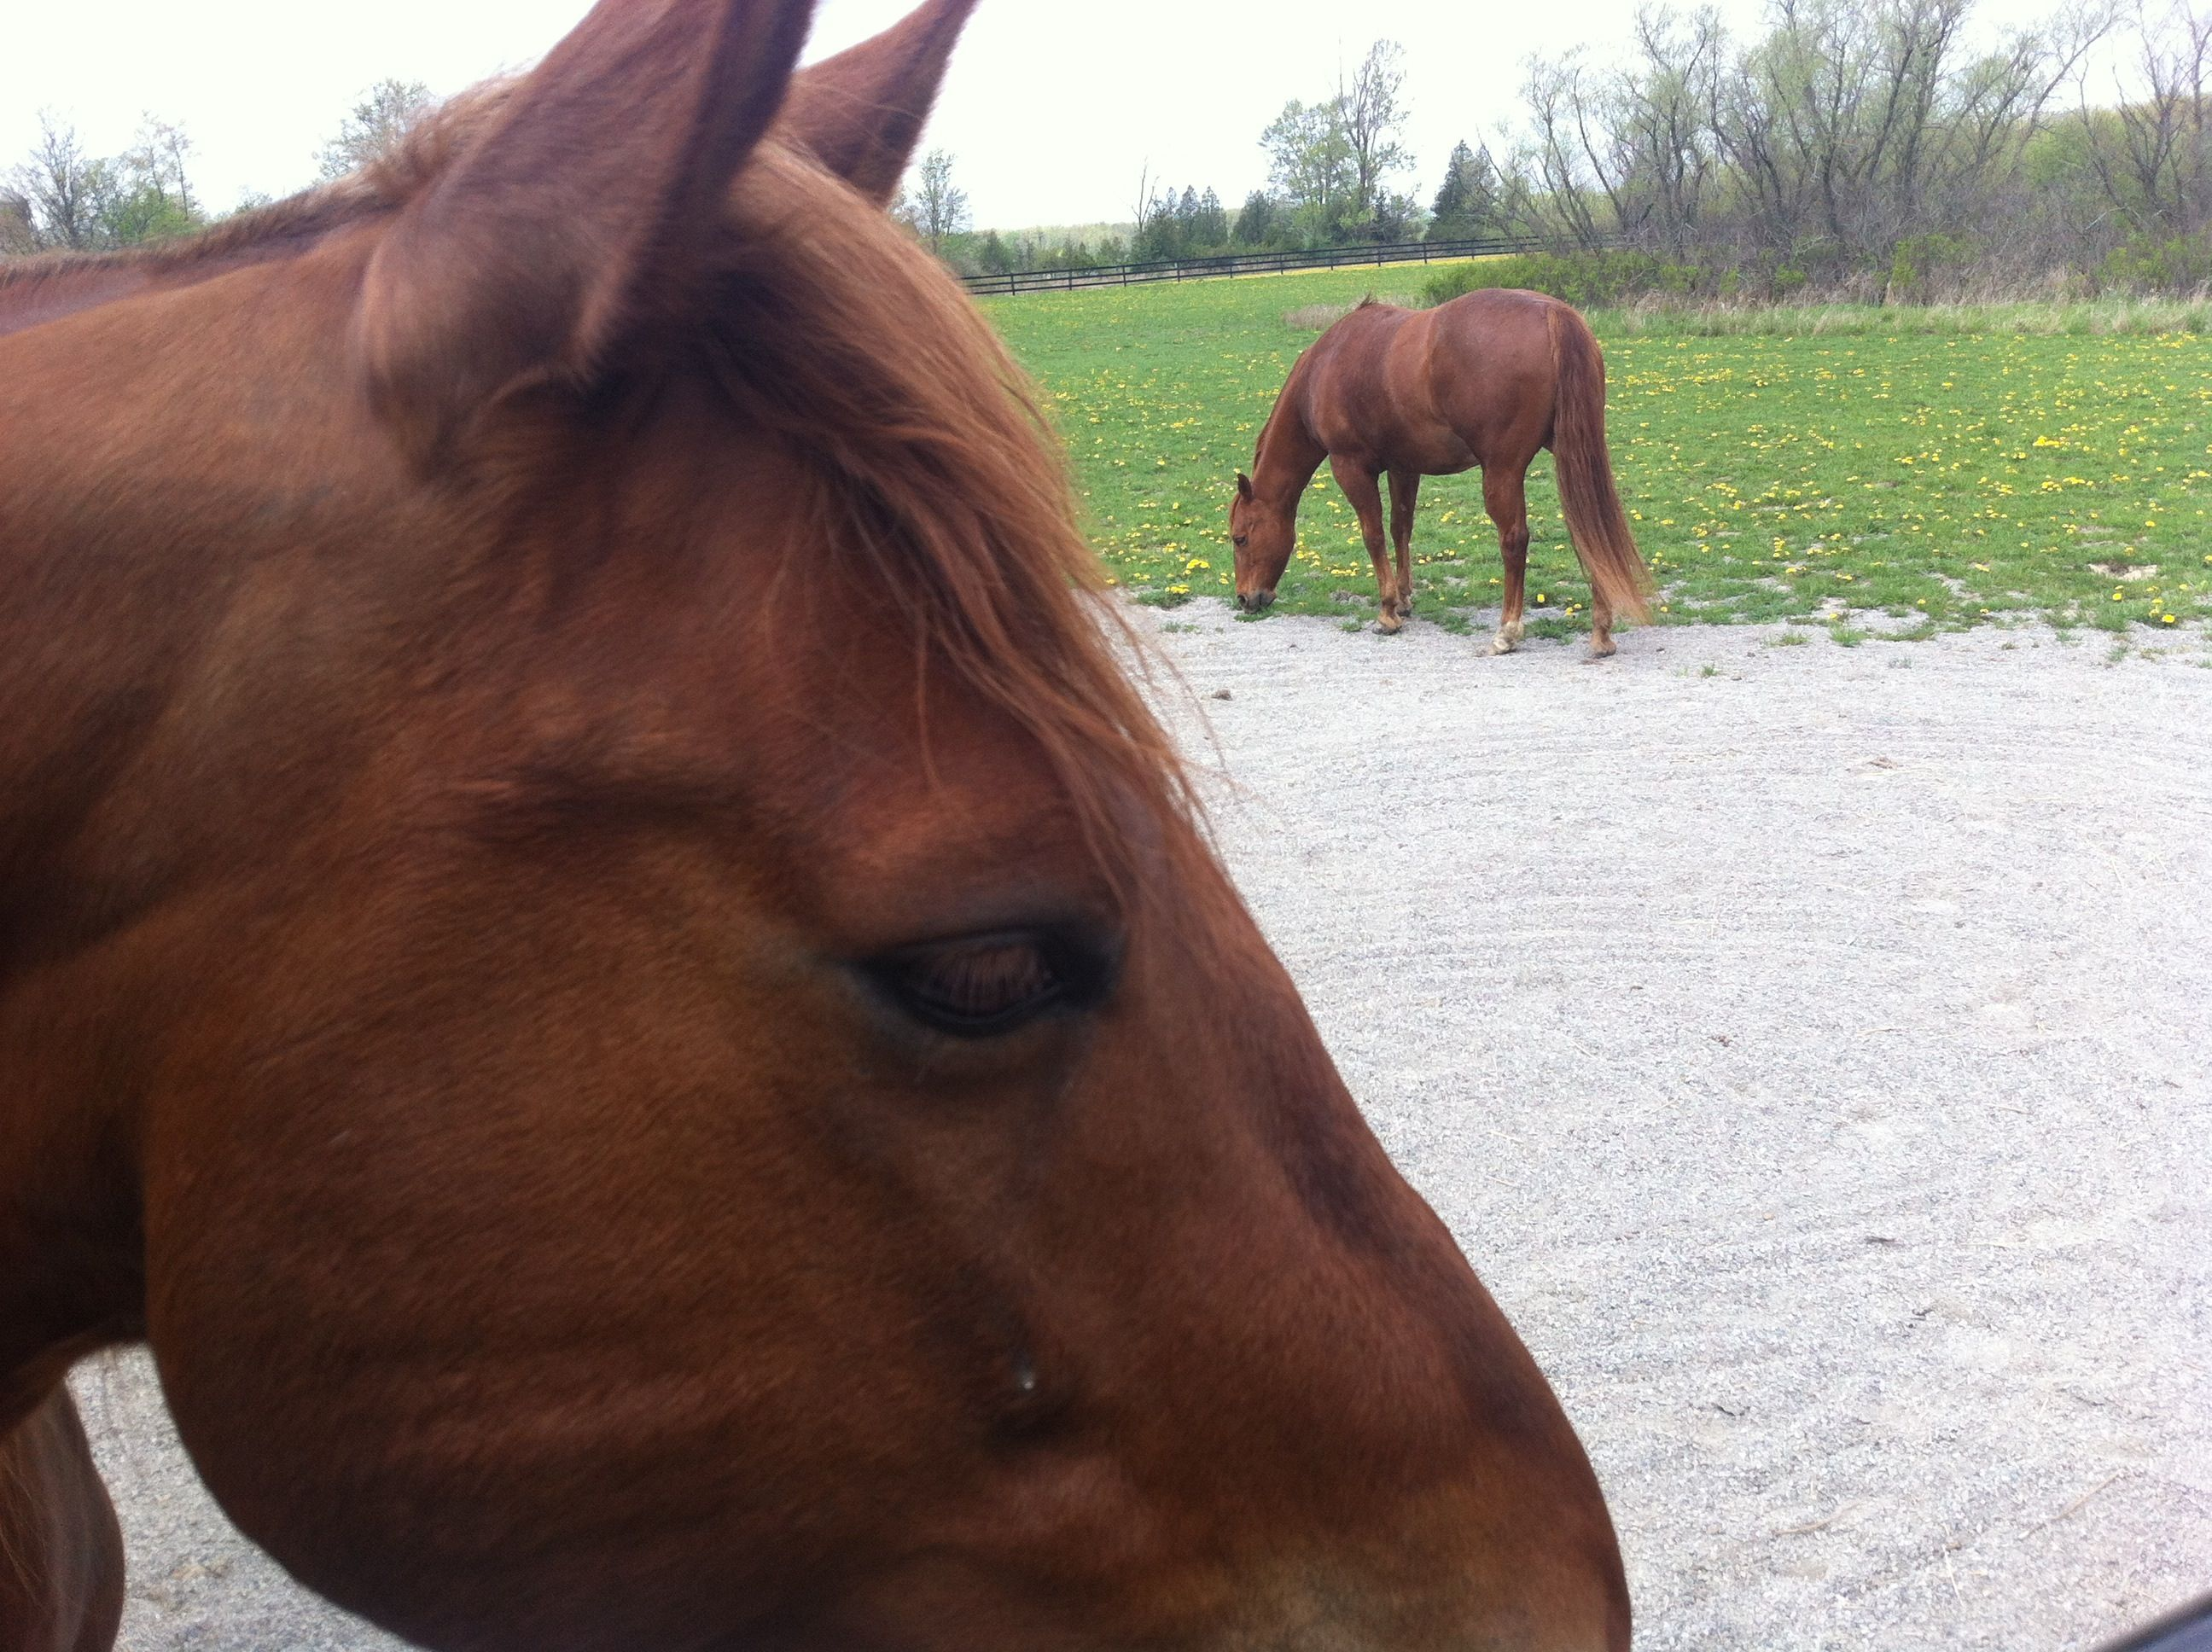 """Love horses - """"There's nothing like munching grass with your buddy!"""""""